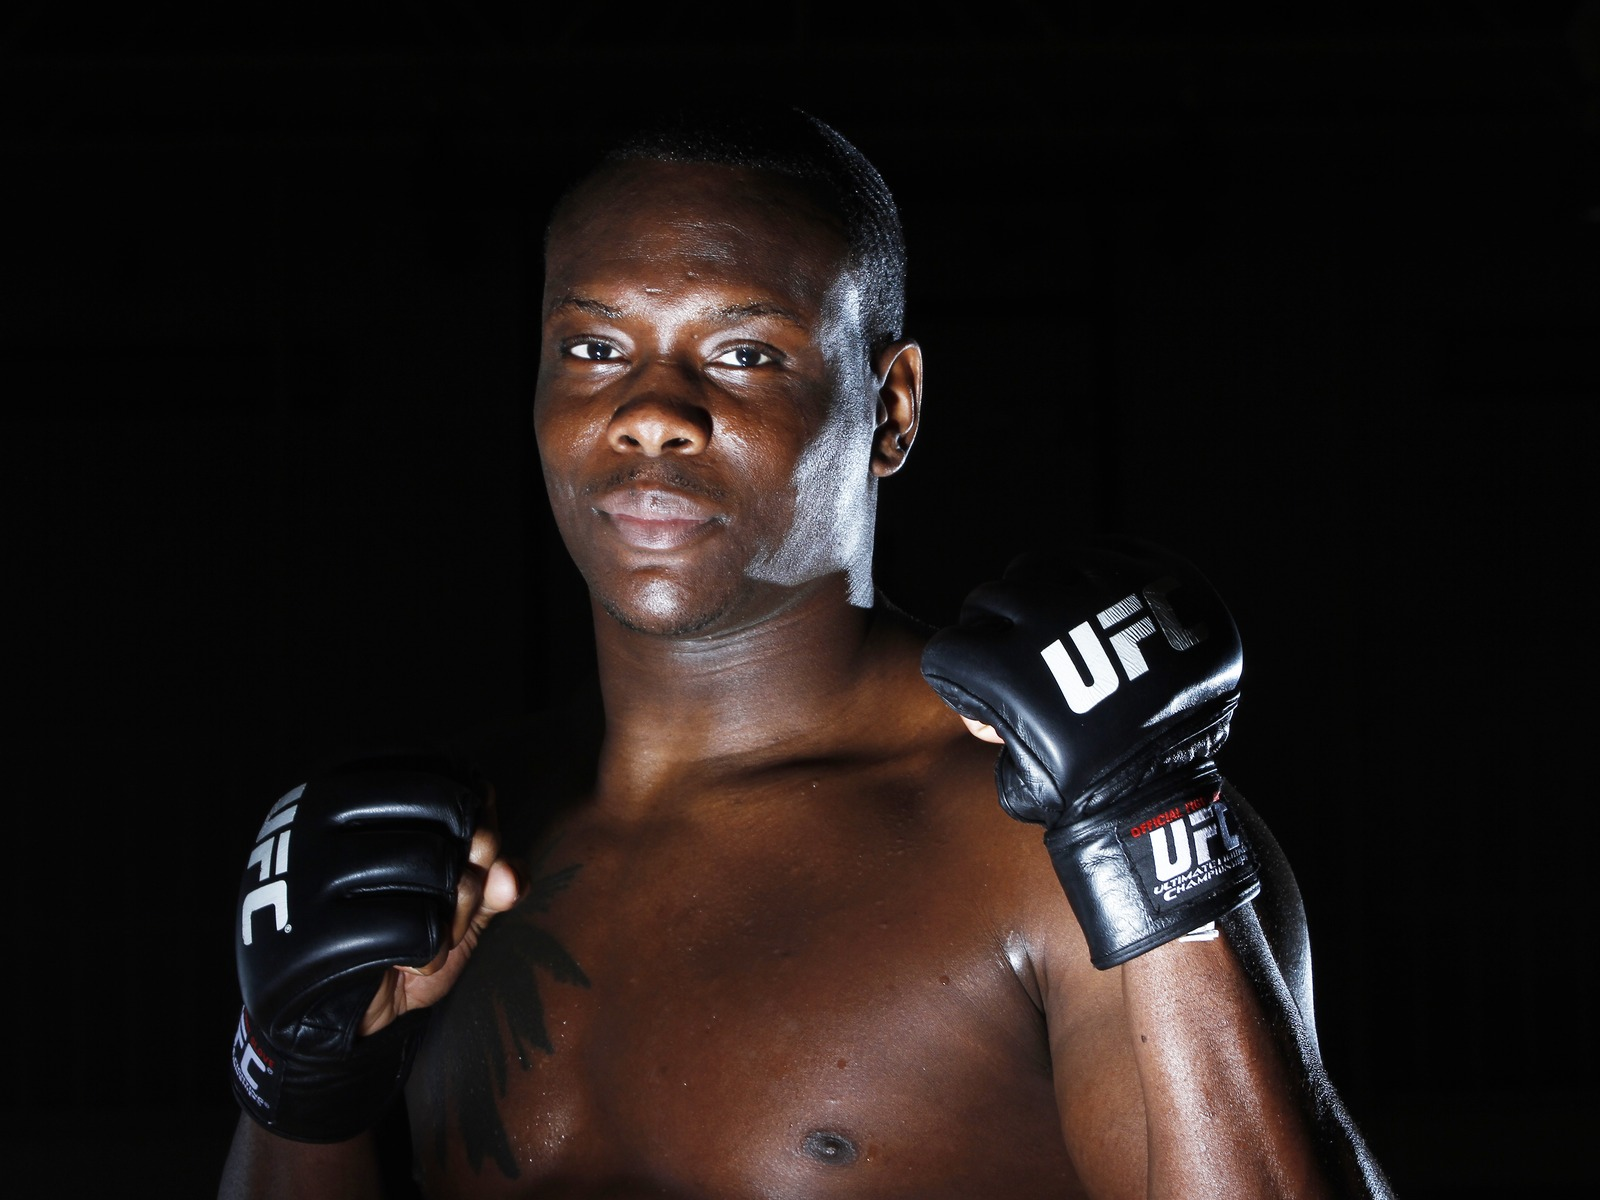 Download wallpaper 1600x1200 ovince saint preux ultimate fighting 1600x1200